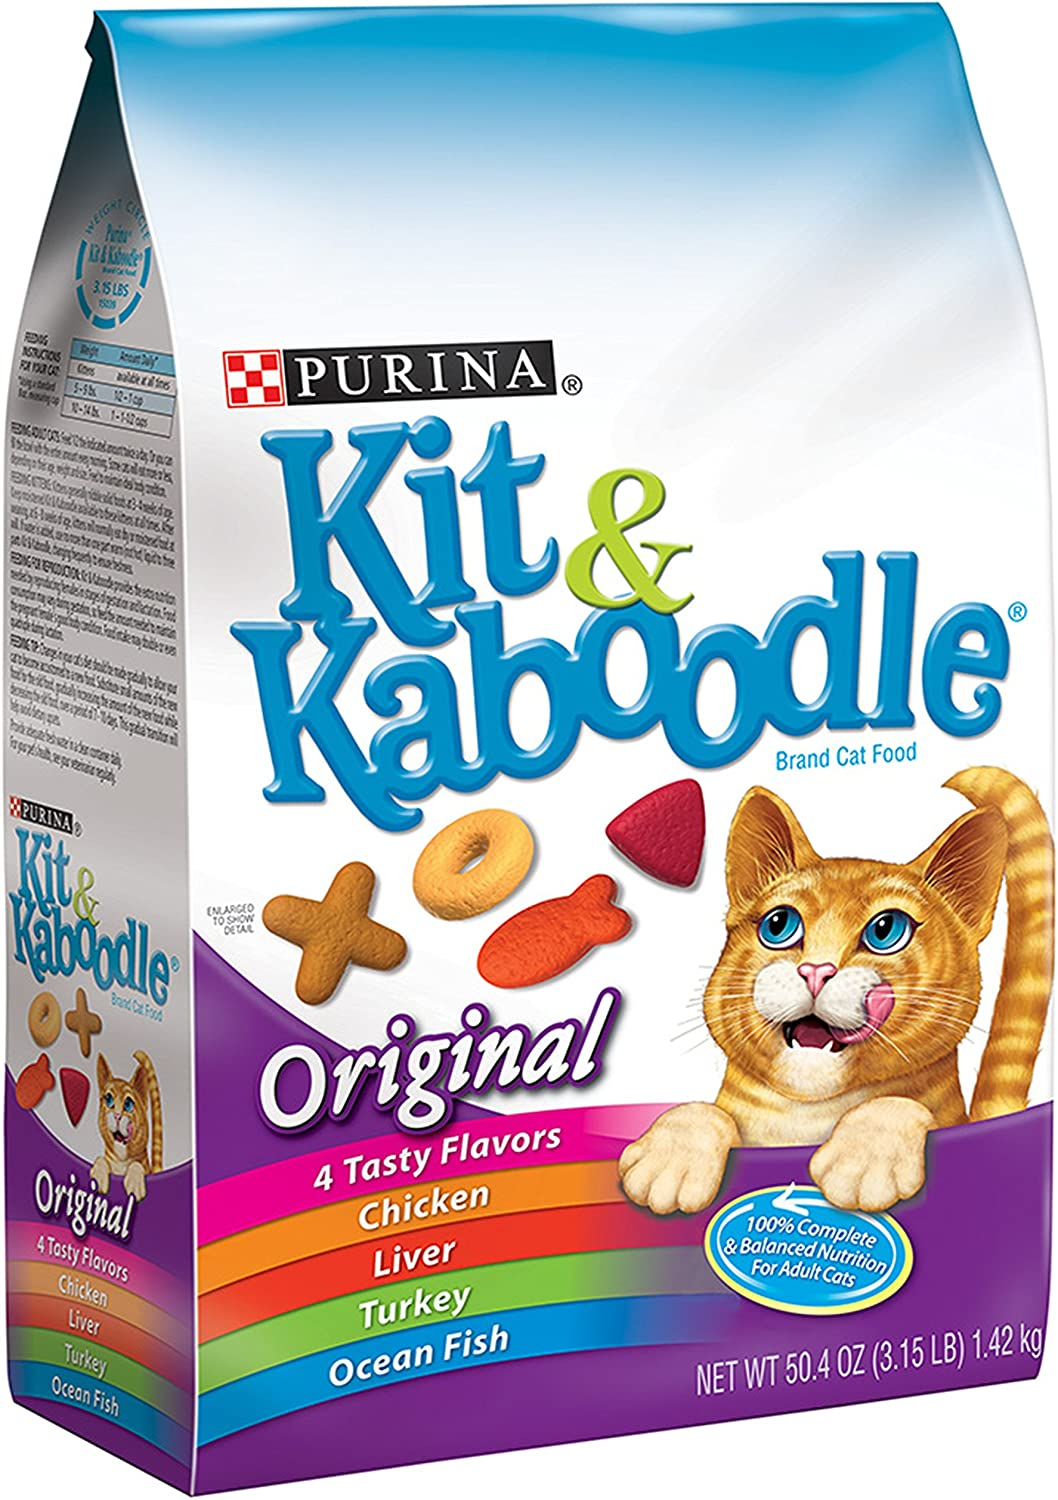 Purina Kit n Kaboodle, 3.5-Pound